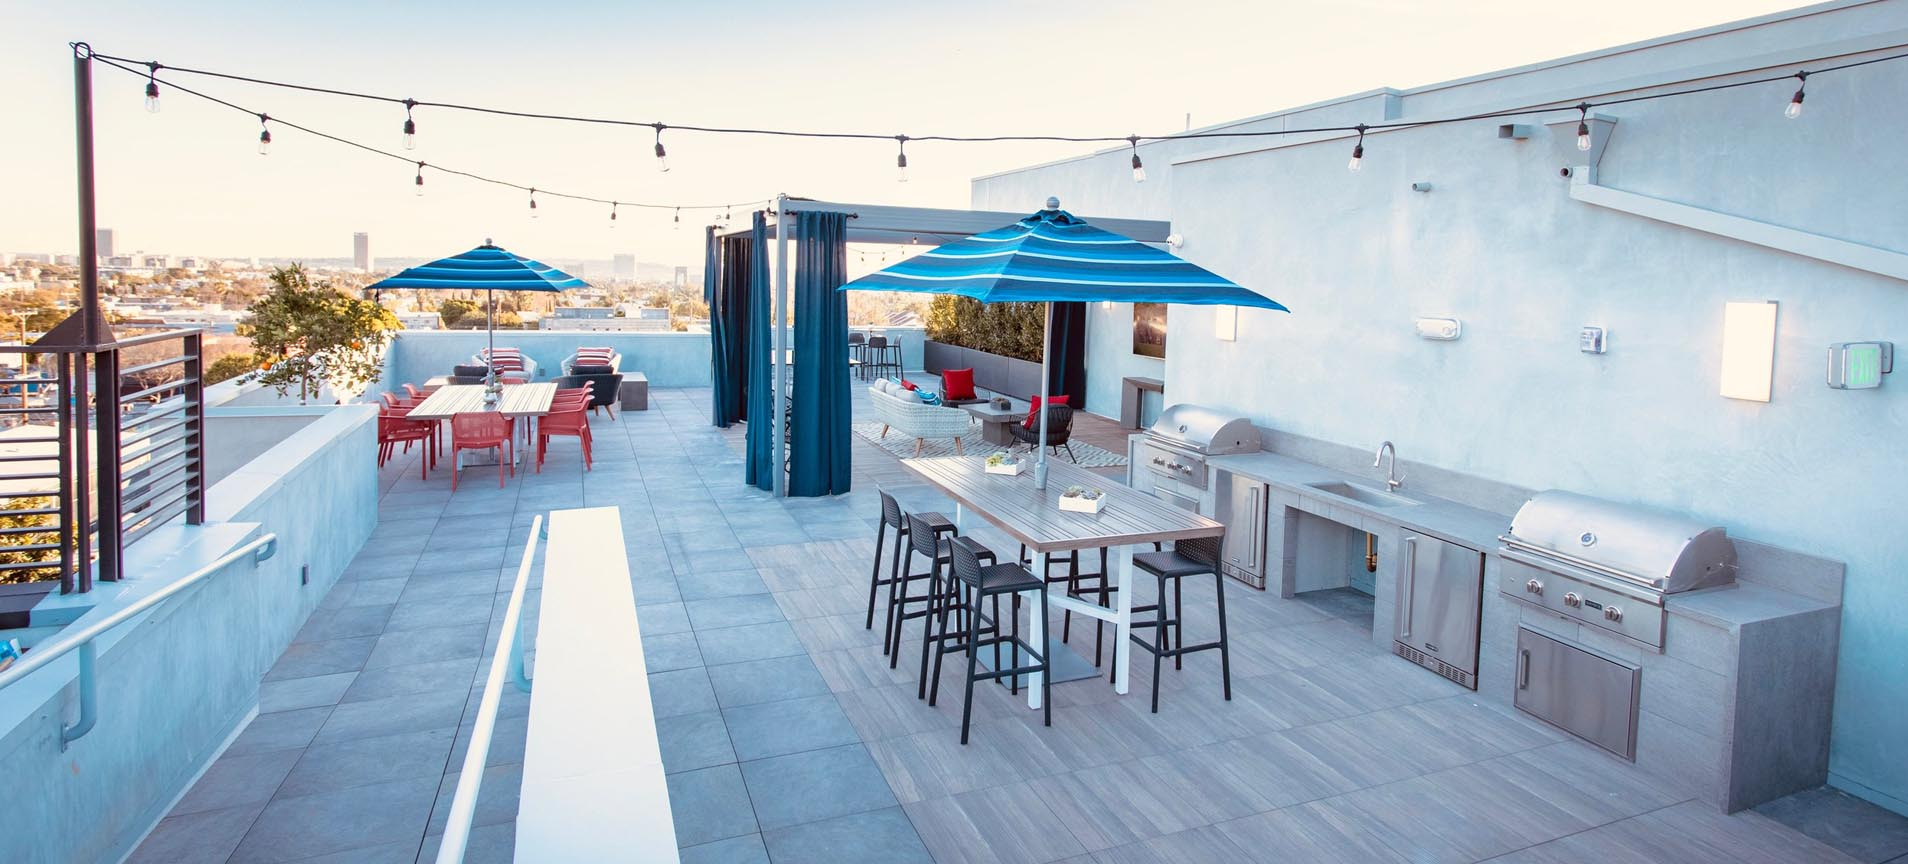 Deck vs. Patio: Which is Right for You?